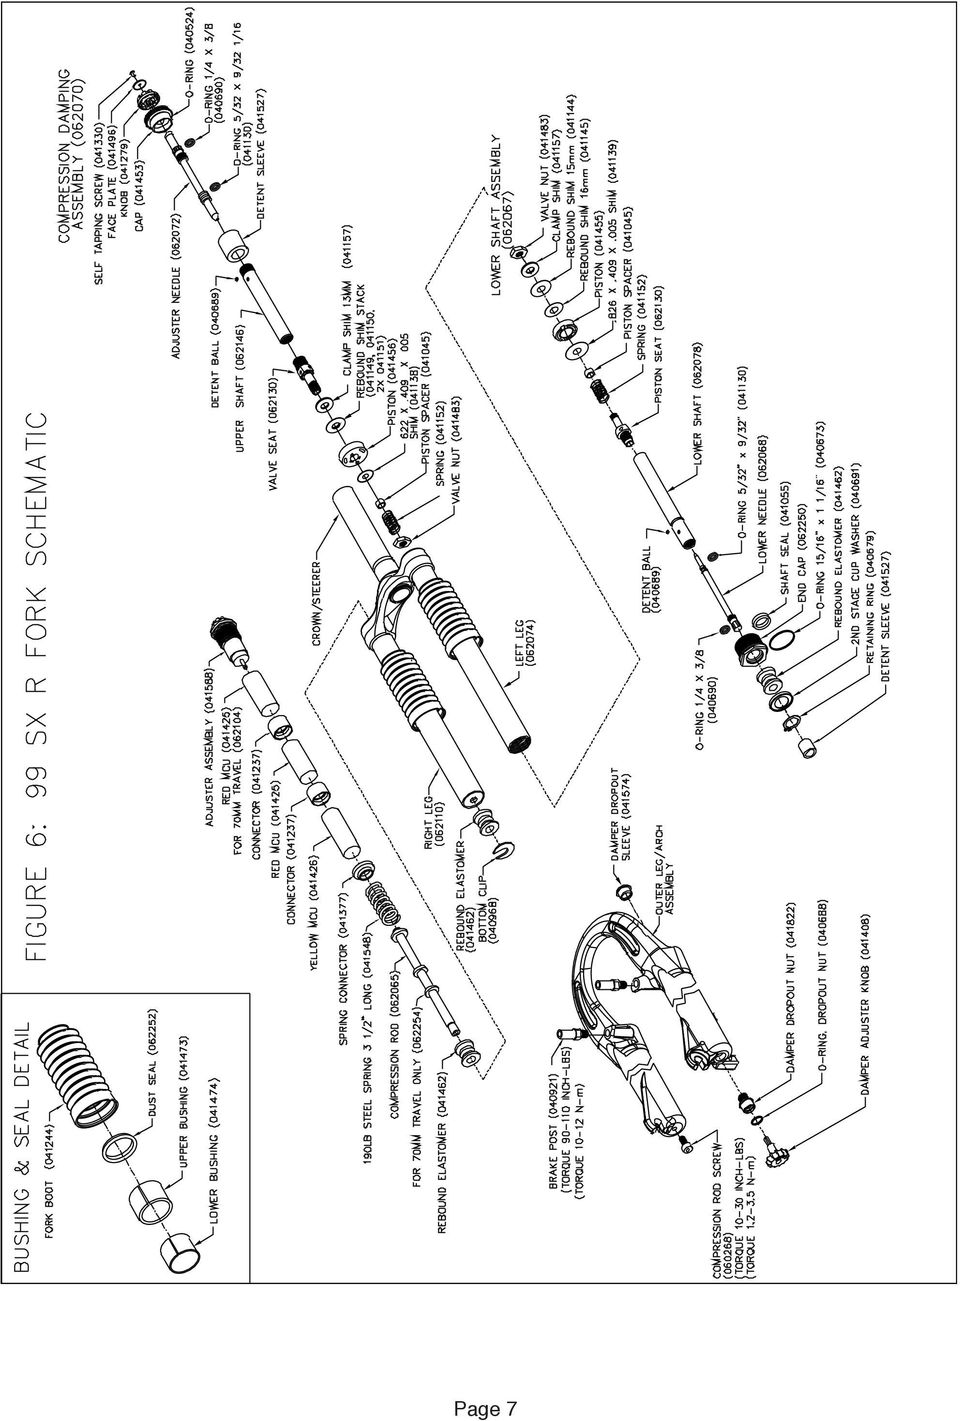 99 sx service manual pdf Engine Vacuum Line Diagram 8 page 7